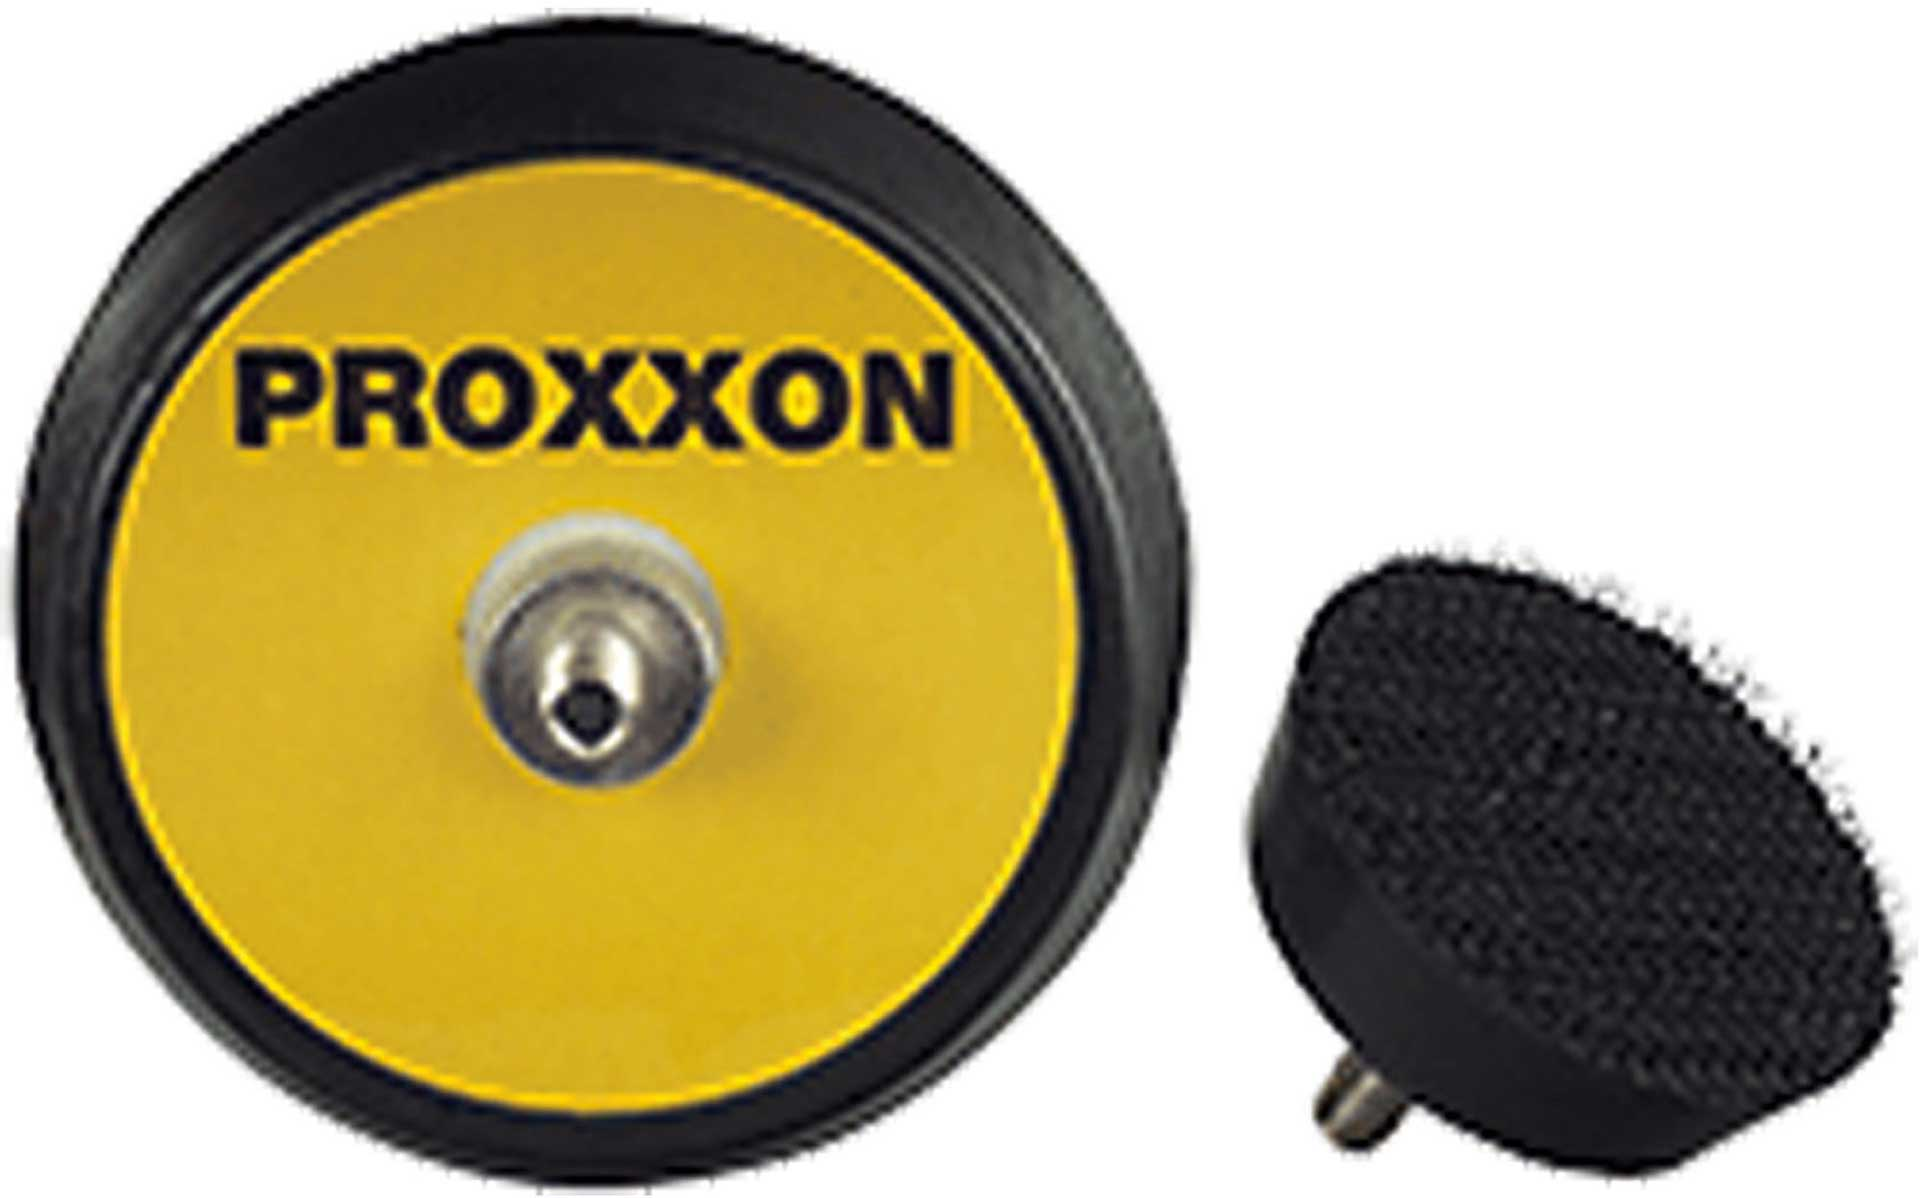 PROXXON FOAM SUPPORT PLATE D=30MM FOR WP/E, WP/A, EP/E, EP/A